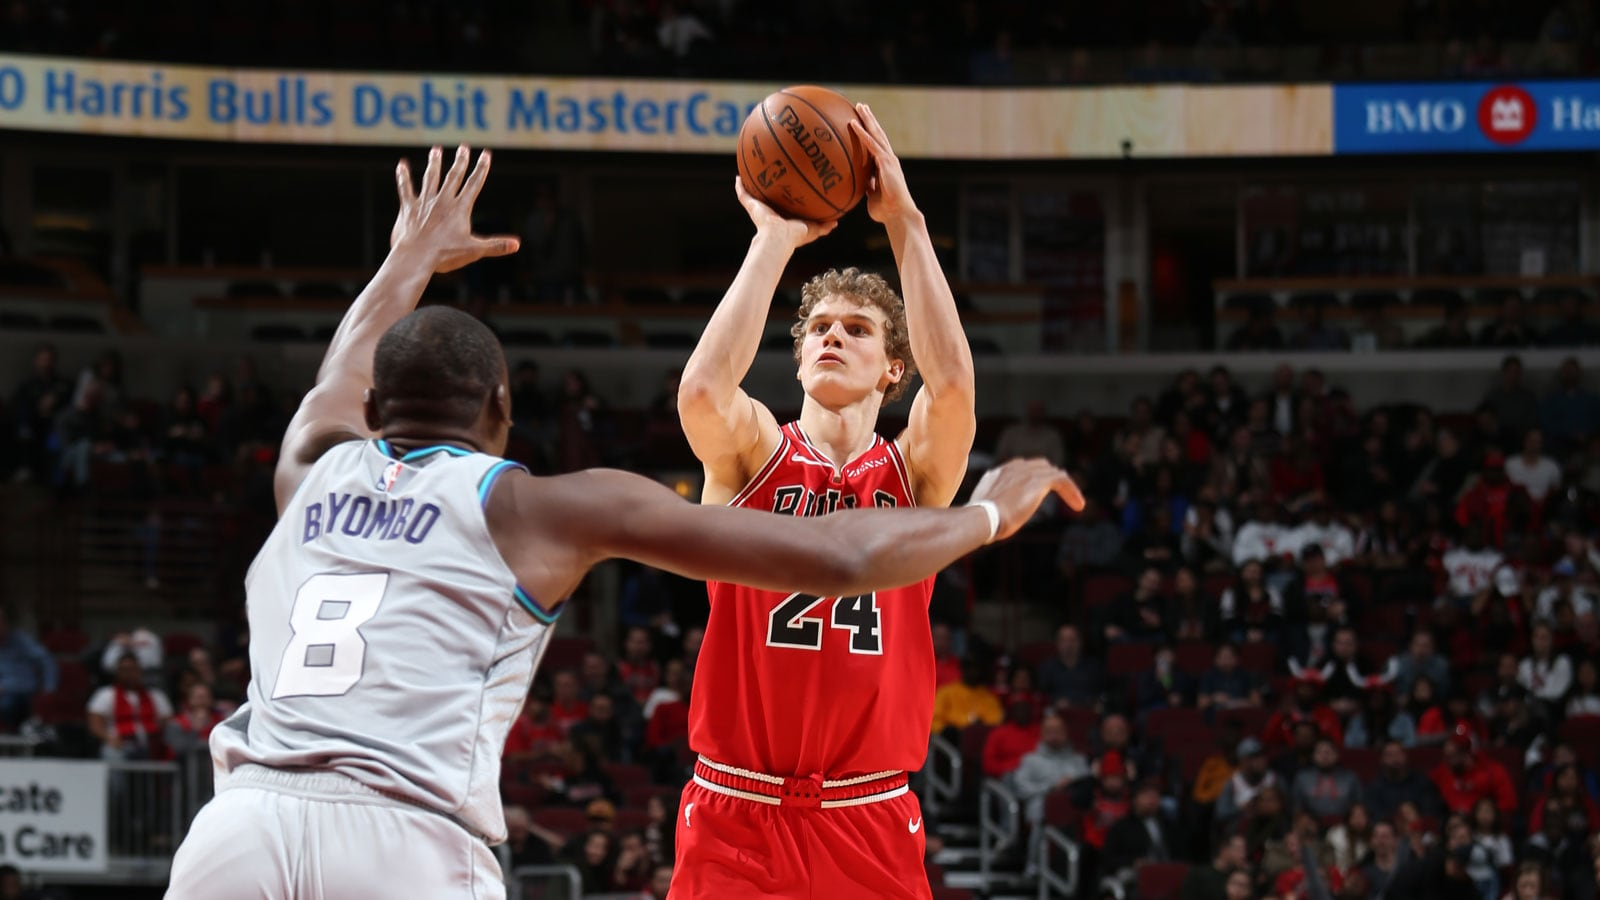 Lauri Markkanen shoots against the Hornets